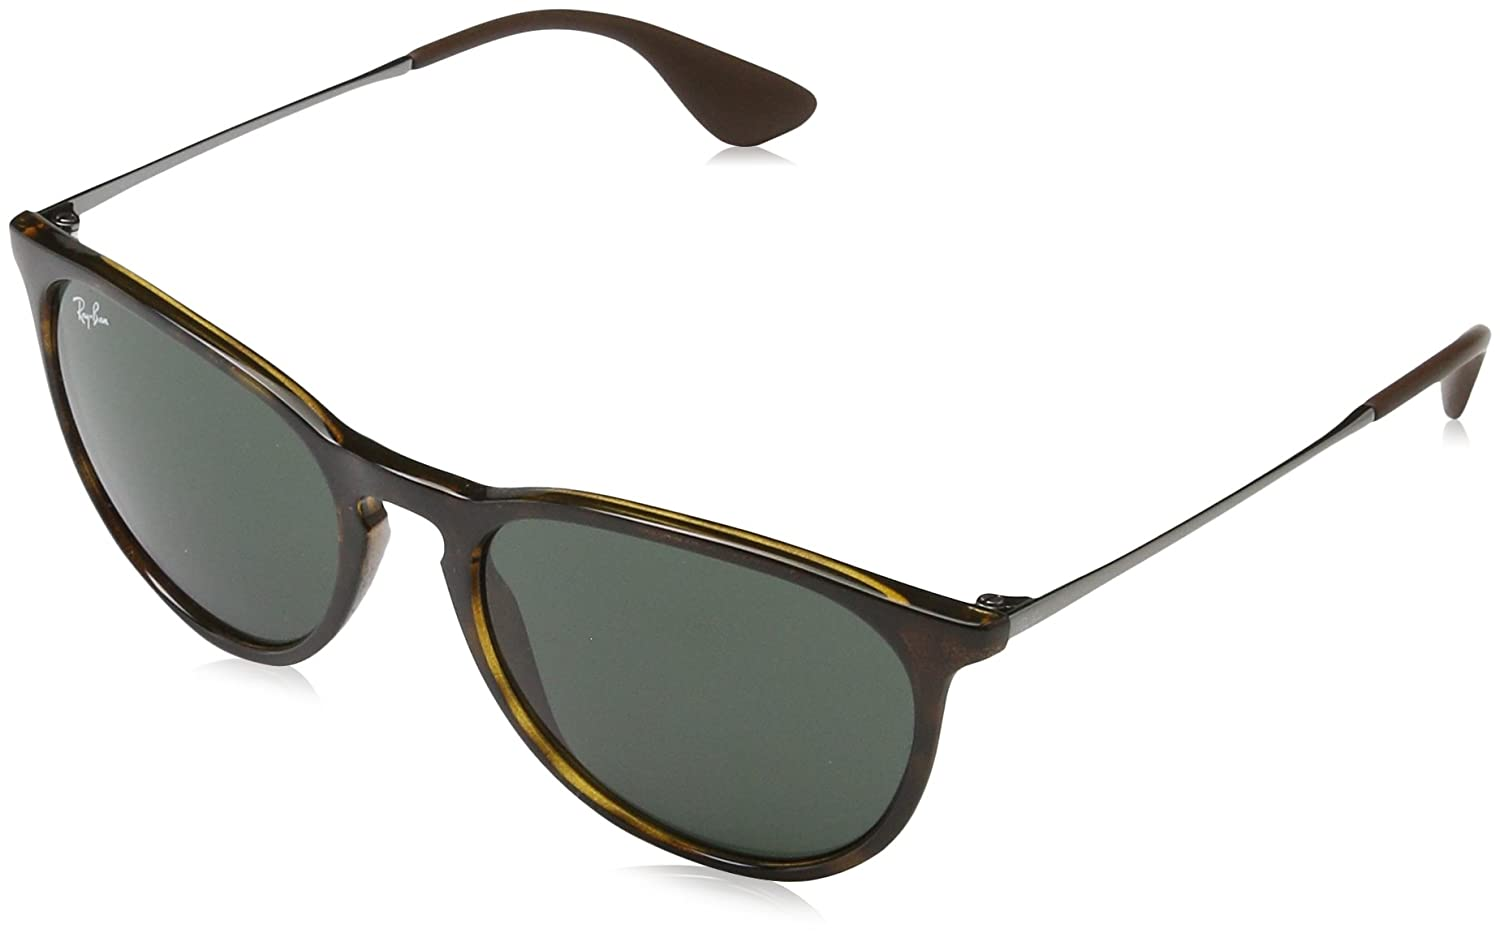 Ray Ban, Erika - Gafas de sol unisex, rama color marron y lente color verde oscuro, talla 54 mm